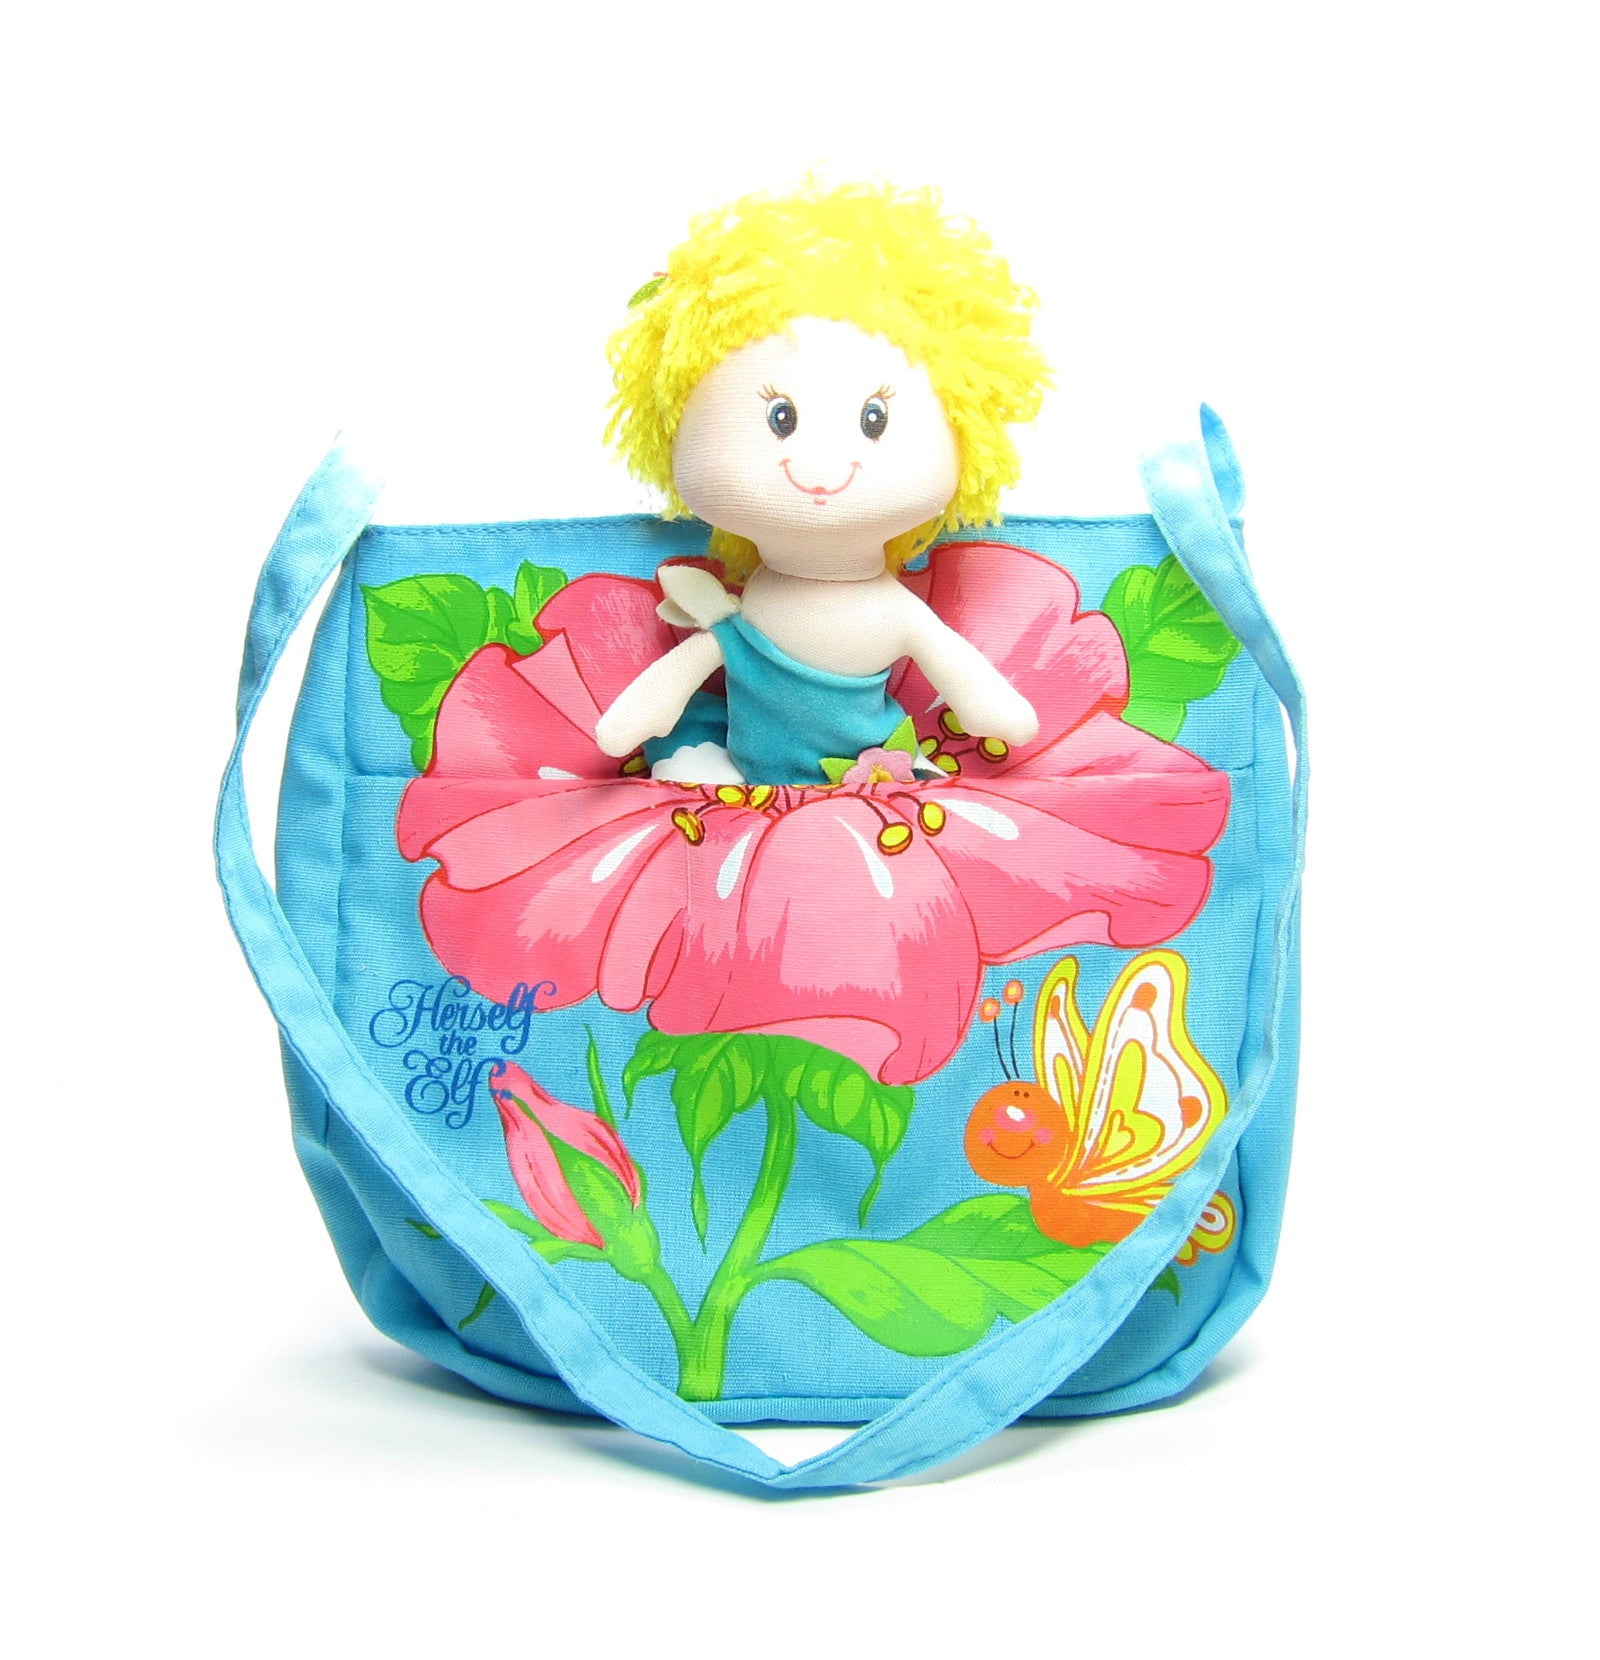 Herself the Elf children's purse with cloth doll